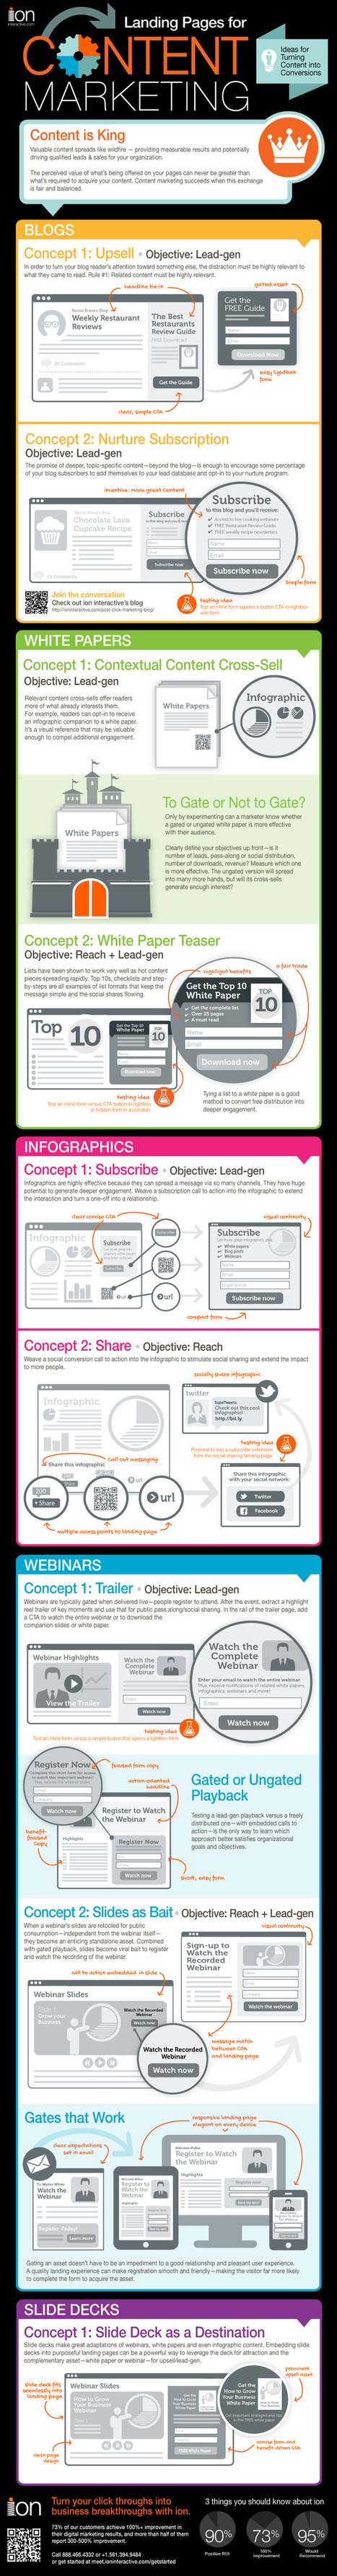 Landing Pages for Content Marketing [Infographic] - Ion Interactive | #TheMarketingAutomationAlert | Conception Editoriale | Scoop.it